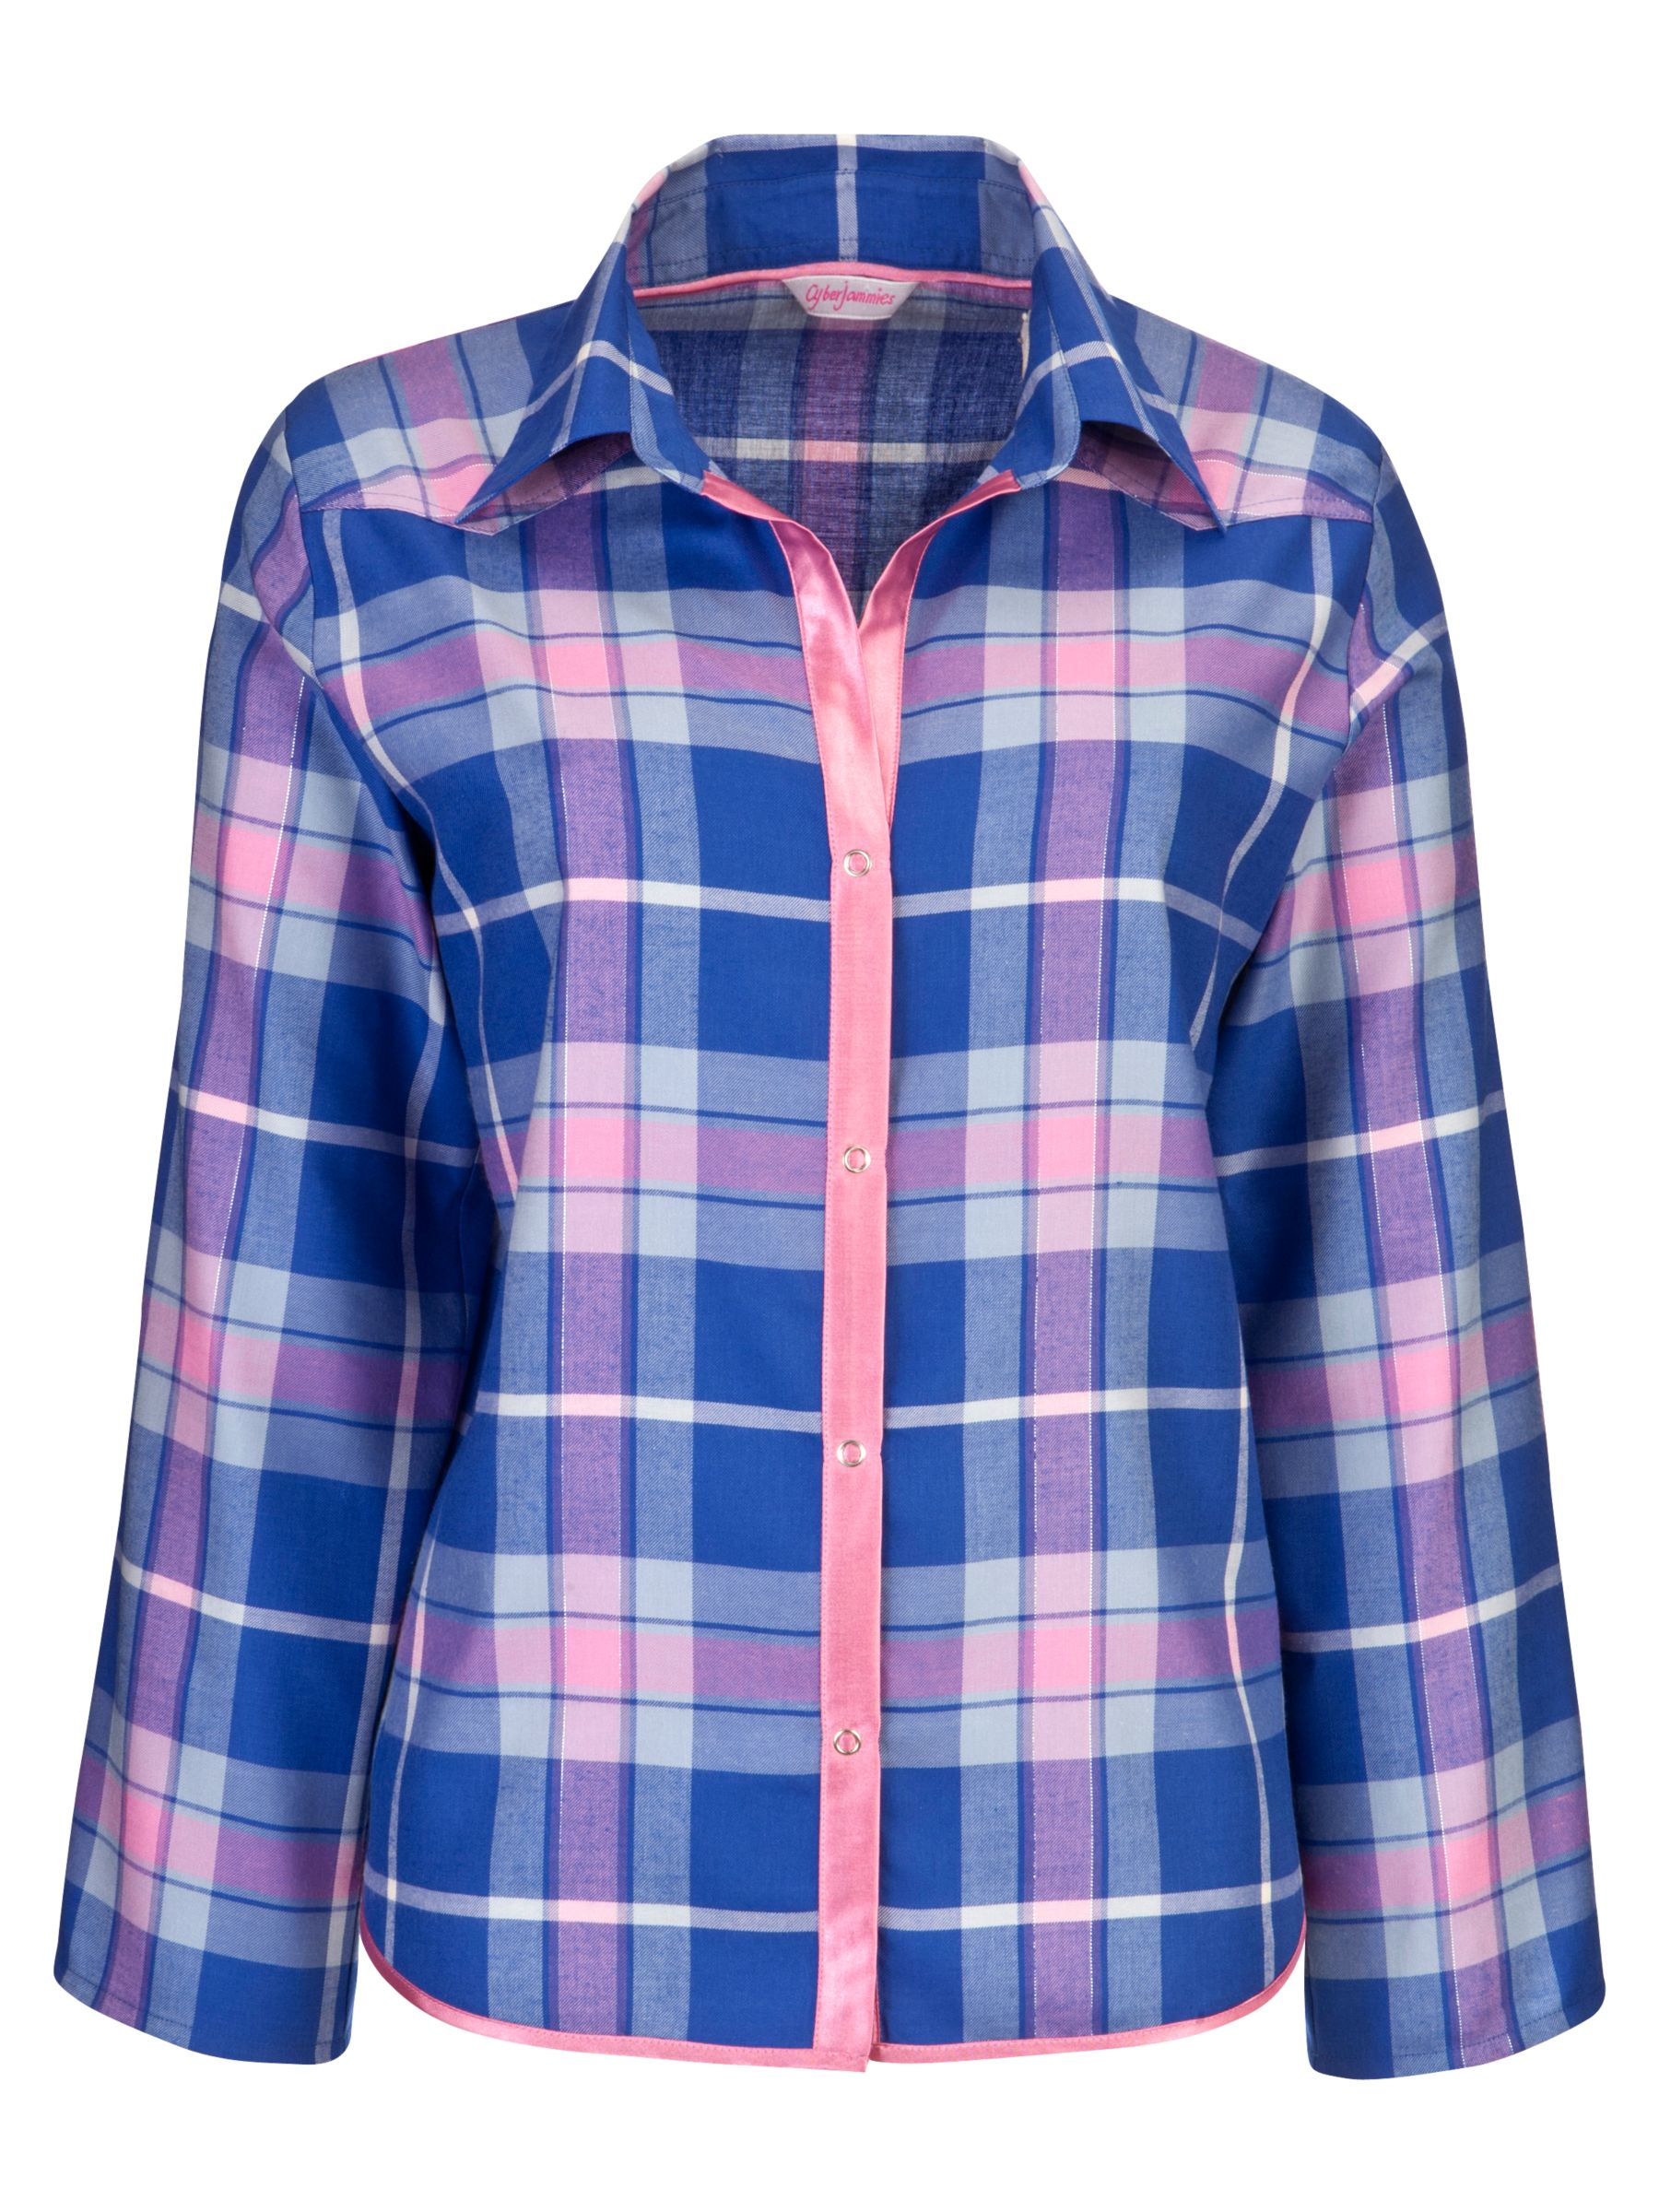 Cyberjammies Cornflower Checked Pyjama Top, Blue